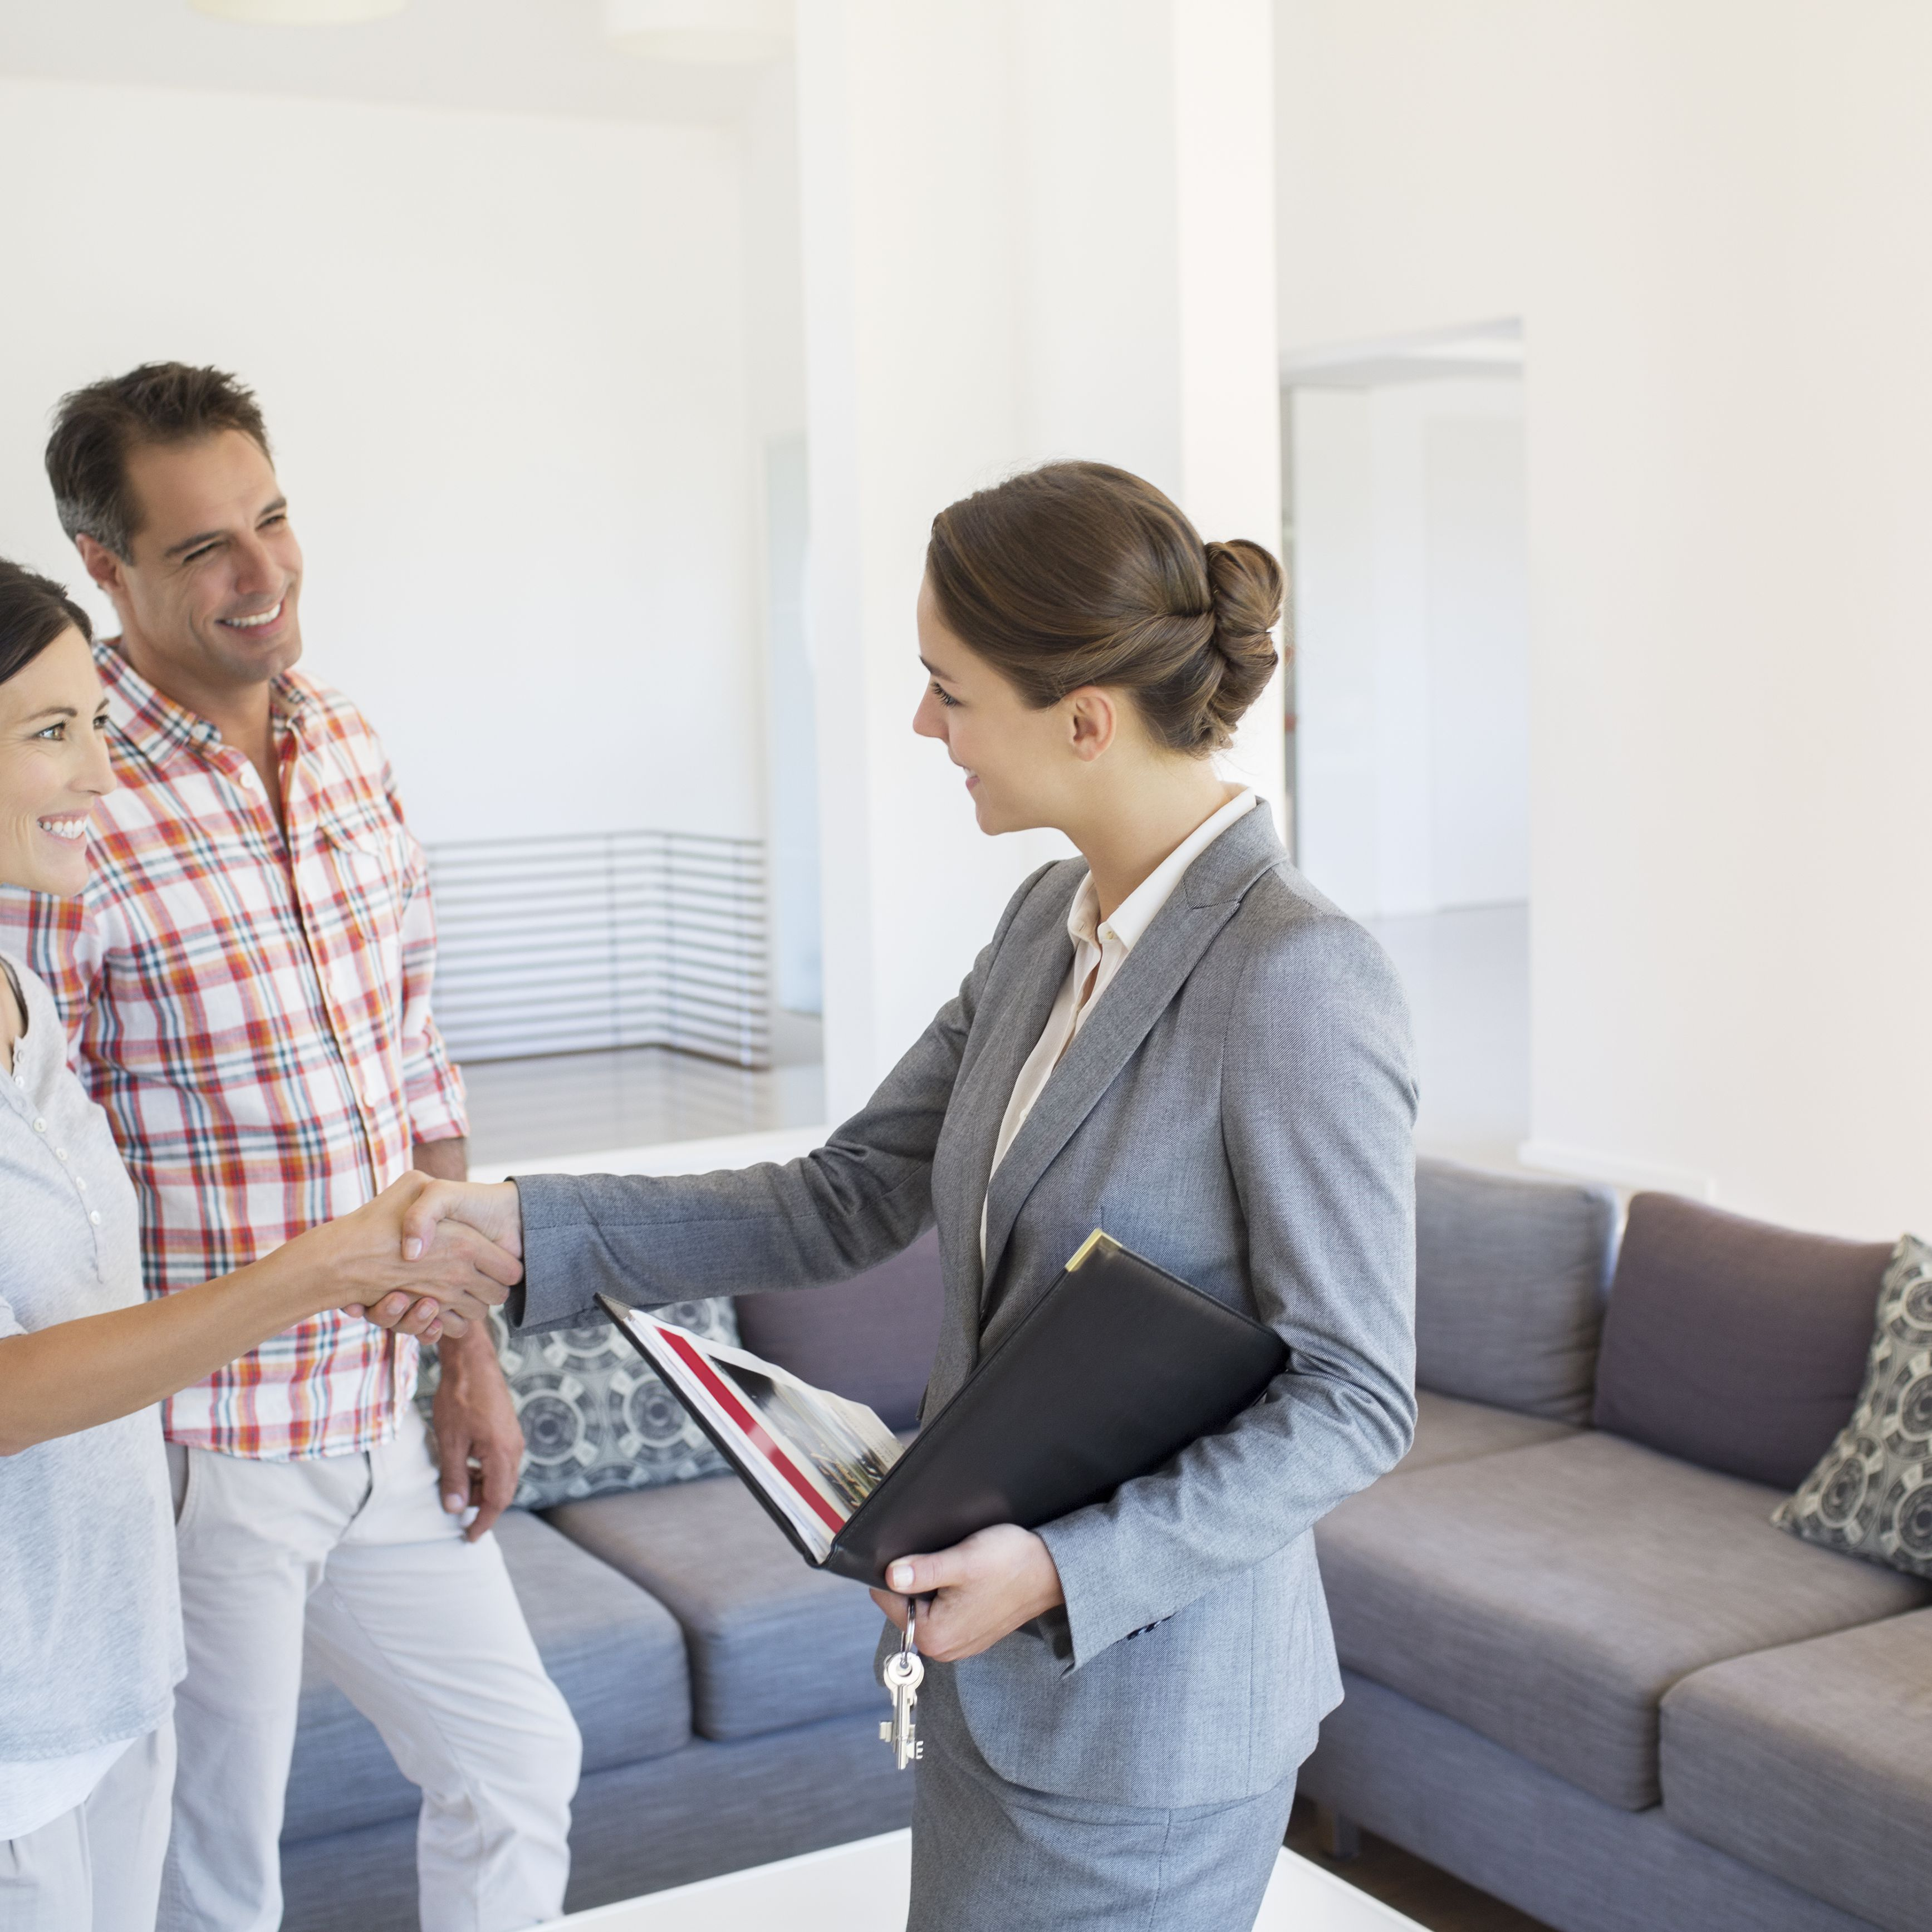 A List of Rules for Home Buyers Working With Real Estate Agents